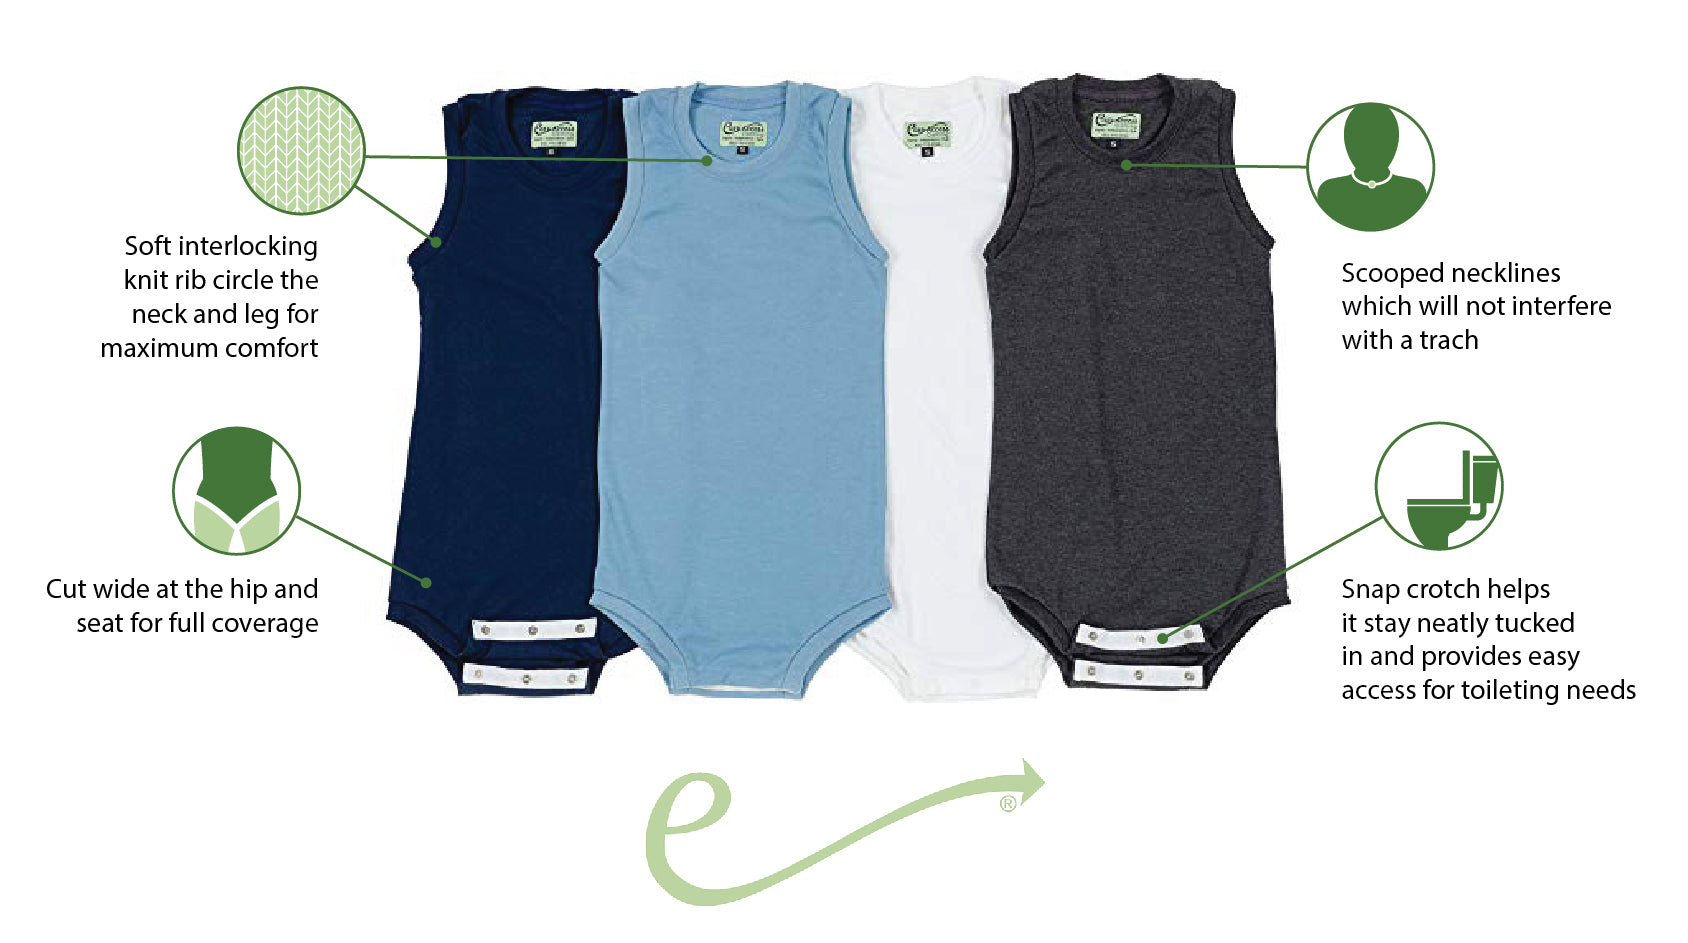 Easy access clothing features on children collection